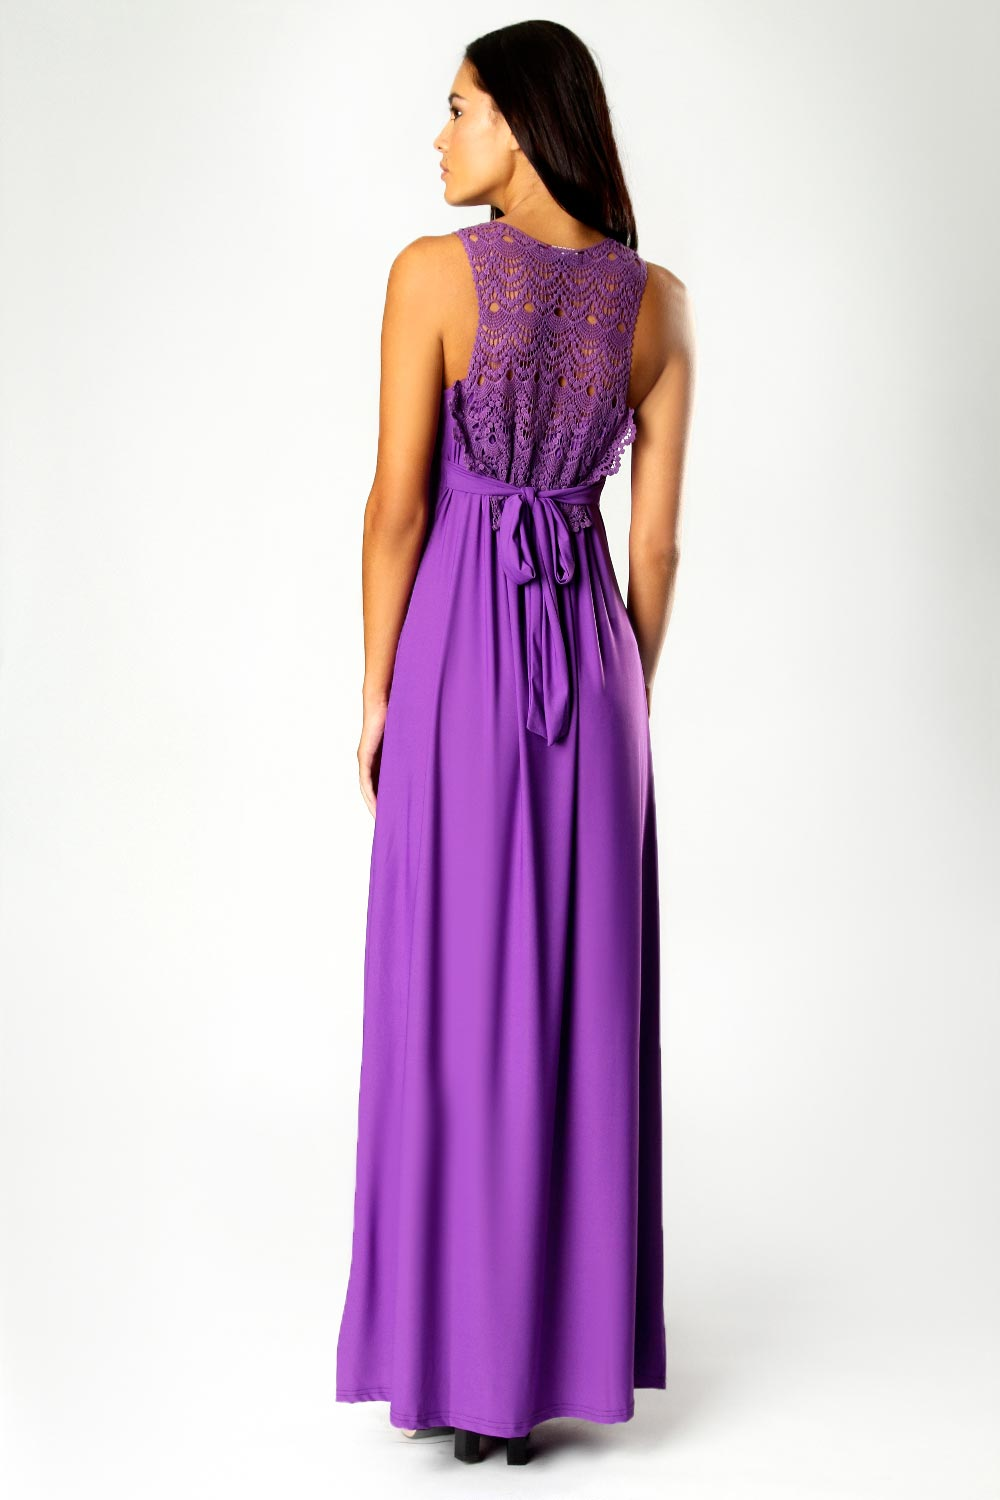 Boohoo Jess Crossover Front Lace Back Maxi Dress in Purple | eBay